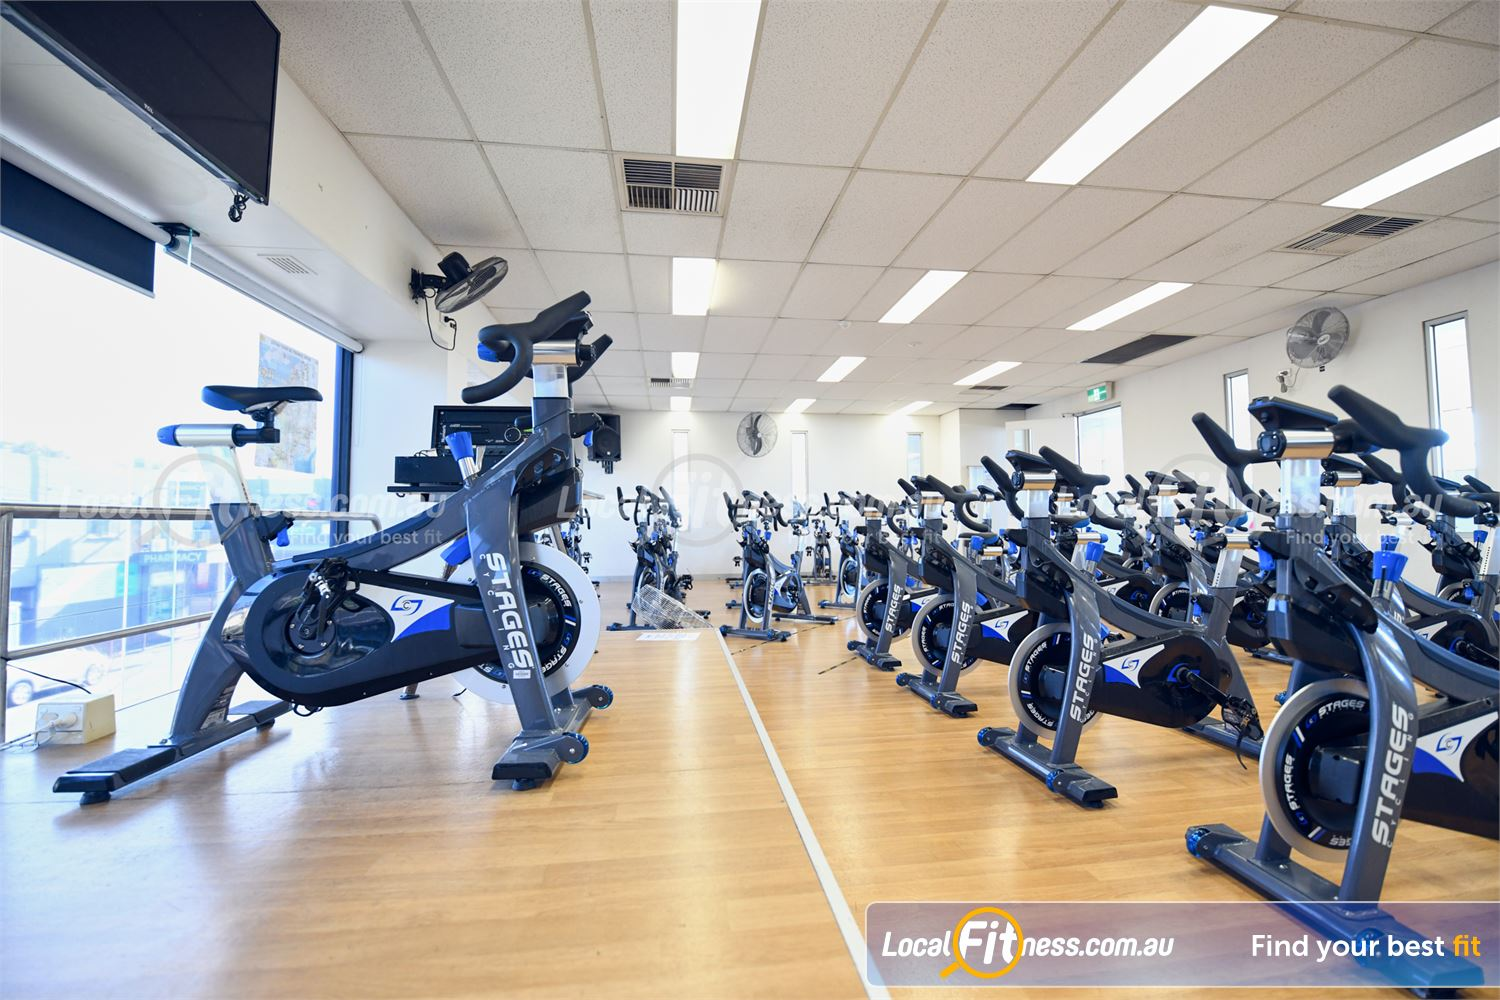 Goodlife Health Clubs Glen Iris Our Glen Iris cycle studio uses state of the art Stages cycle bikes with power meters.